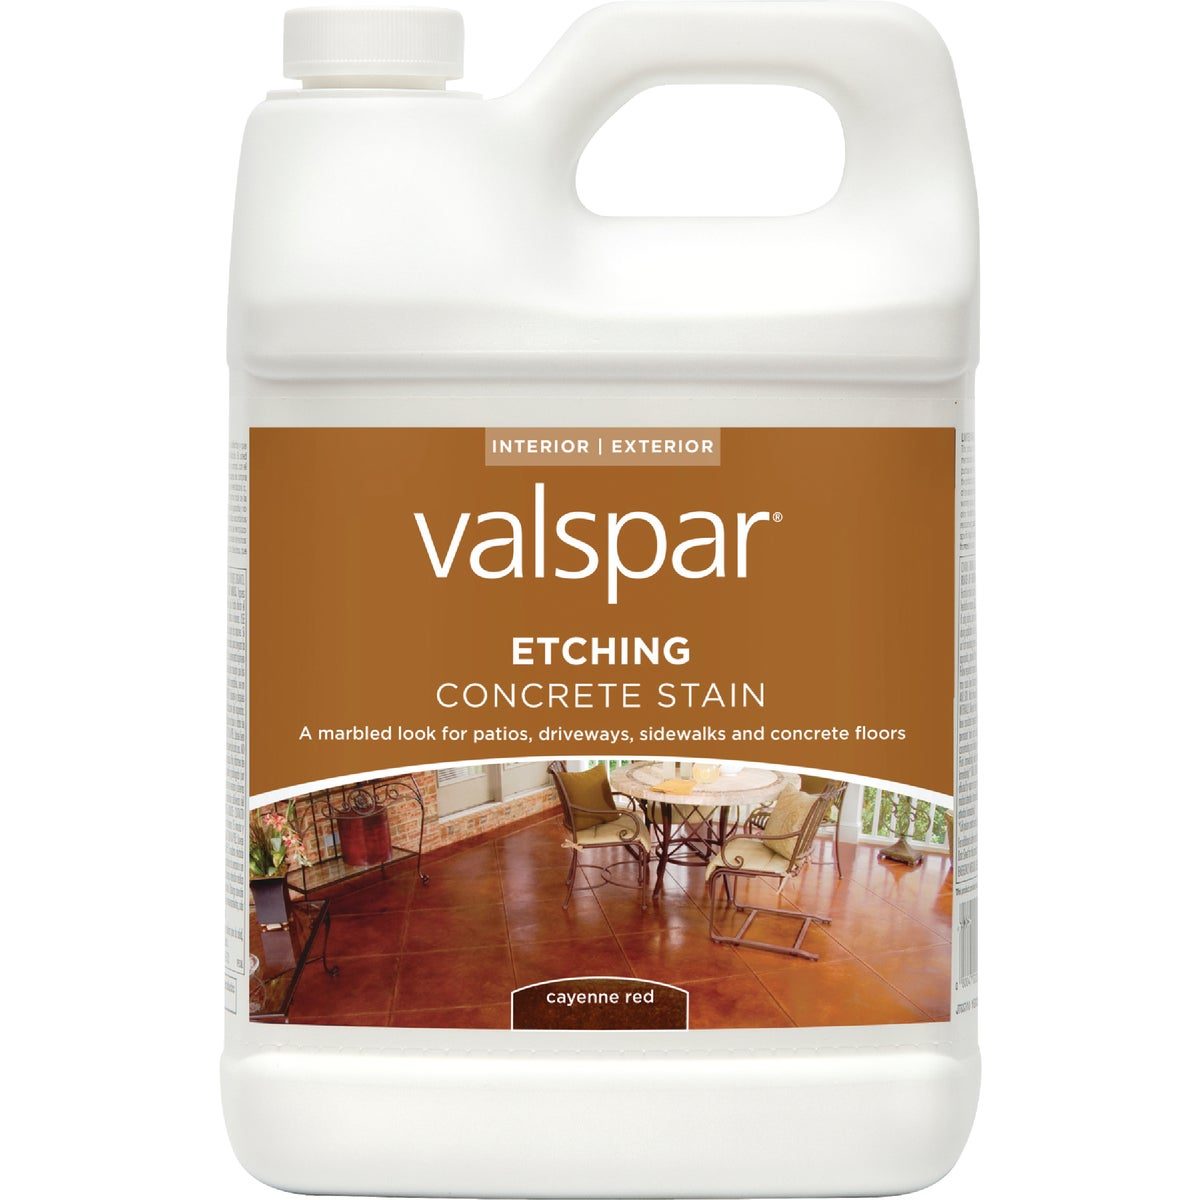 RED ETCHING STAIN - 024.0082073.007 by Valspar Corp